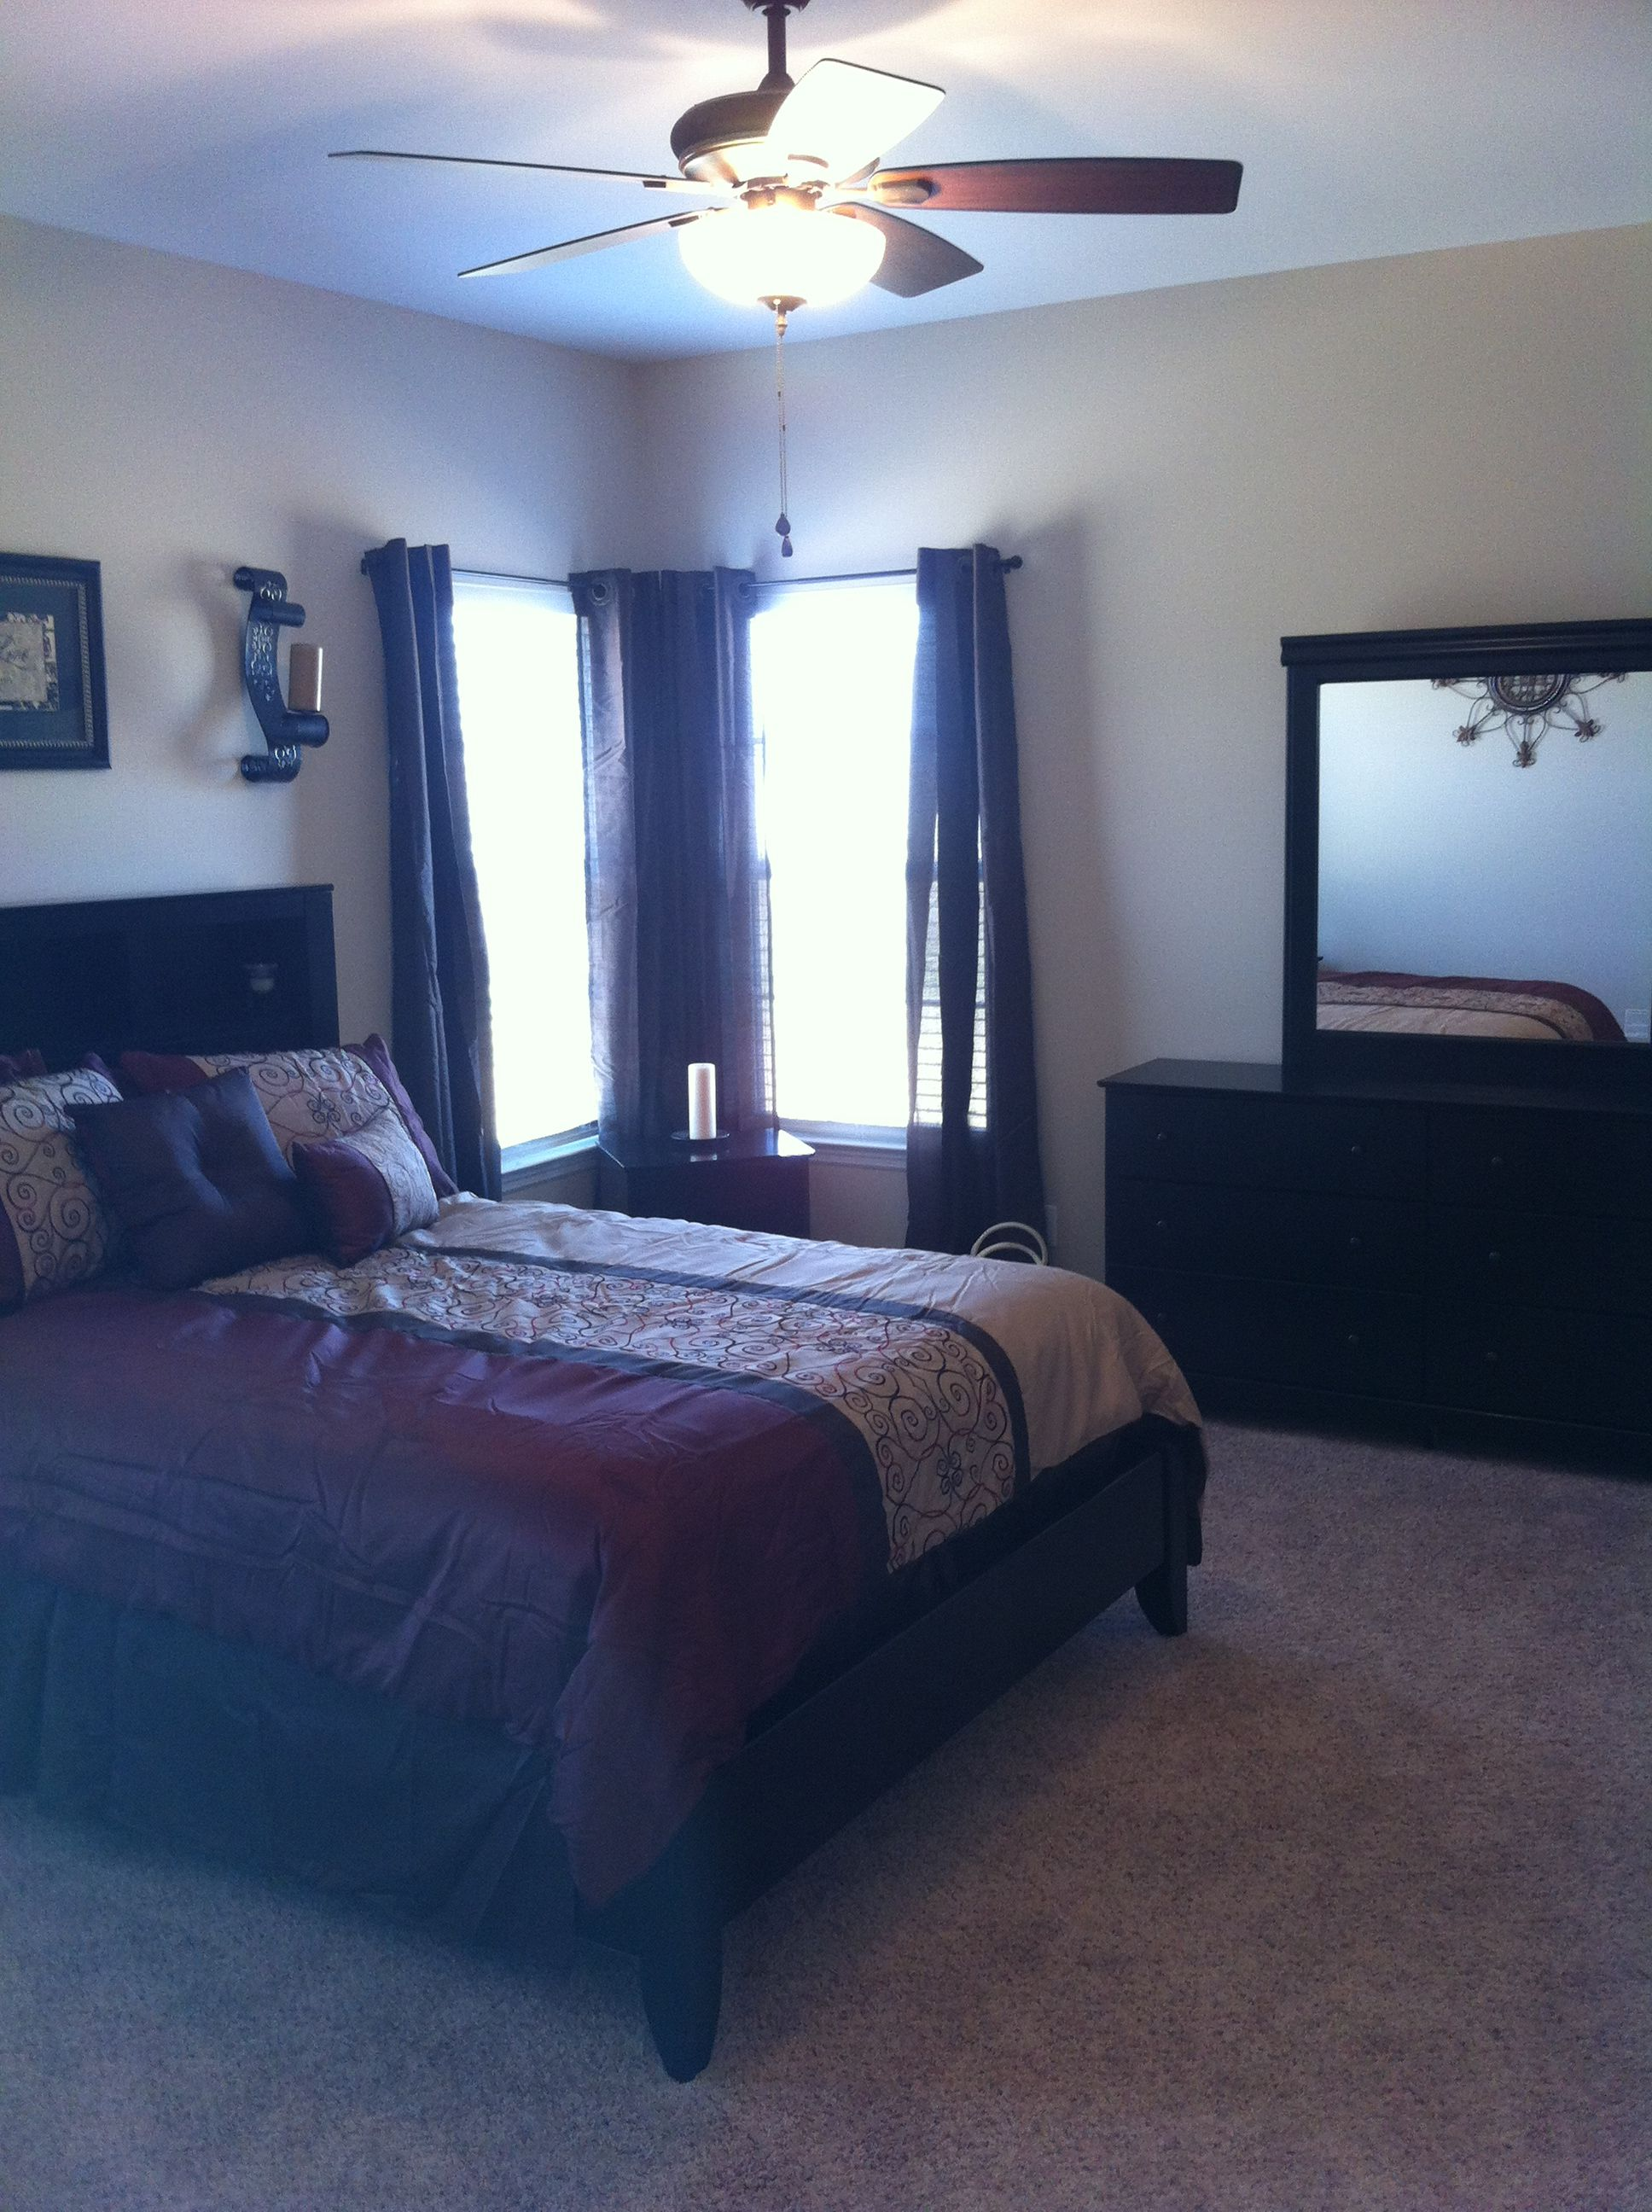 Bedroom featured in The Oceanside By Cannon Builders, Inc.  in St. Louis, MO